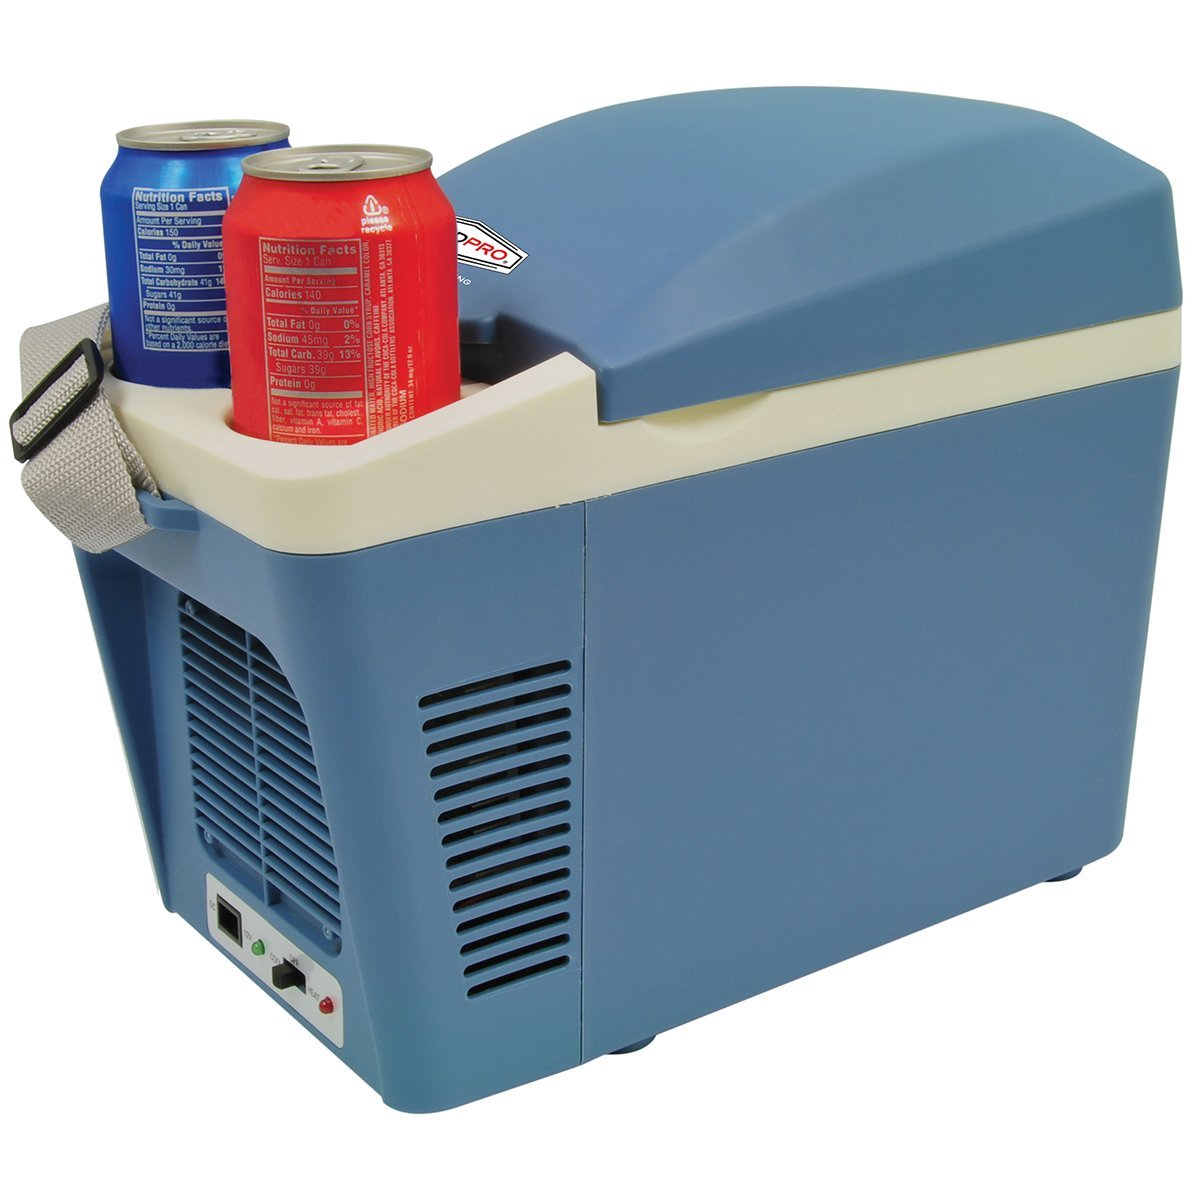 ROADPRO  RPAT-788 12-VOLT 7 LITER COOLER WARMER WITH CUP HOLDERS